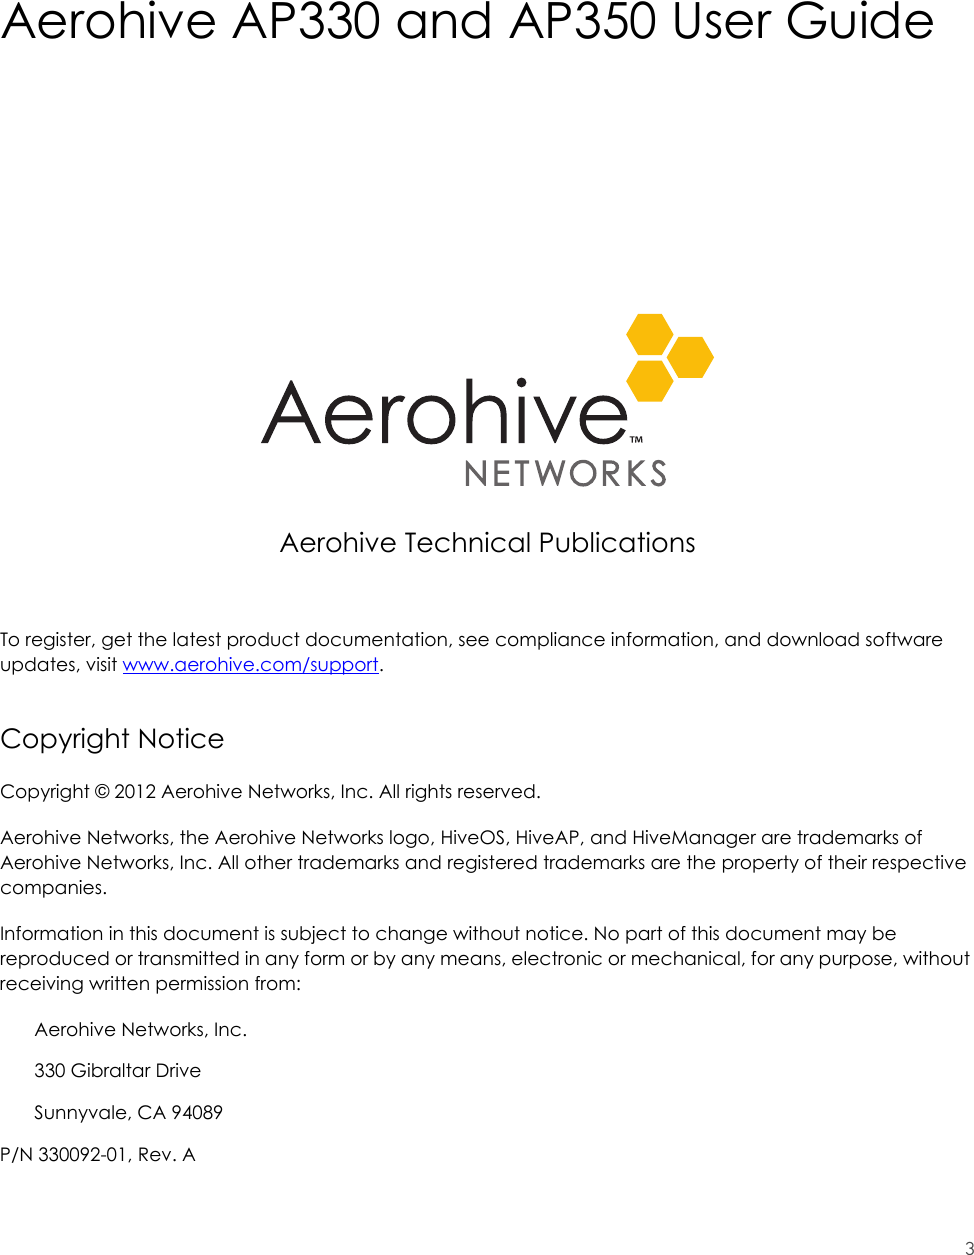 3Aerohive AP330 and AP350 User GuideAerohive Technical PublicationsTo register, get the latest product documentation, see compliance information, and download software updates, visit www.aerohive.com/support.Copyright NoticeCopyright © 2012 Aerohive Networks, Inc. All rights reserved.Aerohive Networks, the Aerohive Networks logo, HiveOS, HiveAP, and HiveManager are trademarks of Aerohive Networks, Inc. All other trademarks and registered trademarks are the property of their respective companies.Information in this document is subject to change without notice. No part of this document may be reproduced or transmitted in any form or by any means, electronic or mechanical, for any purpose, without receiving written permission from:Aerohive Networks, Inc.330 Gibraltar DriveSunnyvale, CA 94089P/N 330092-01, Rev. A